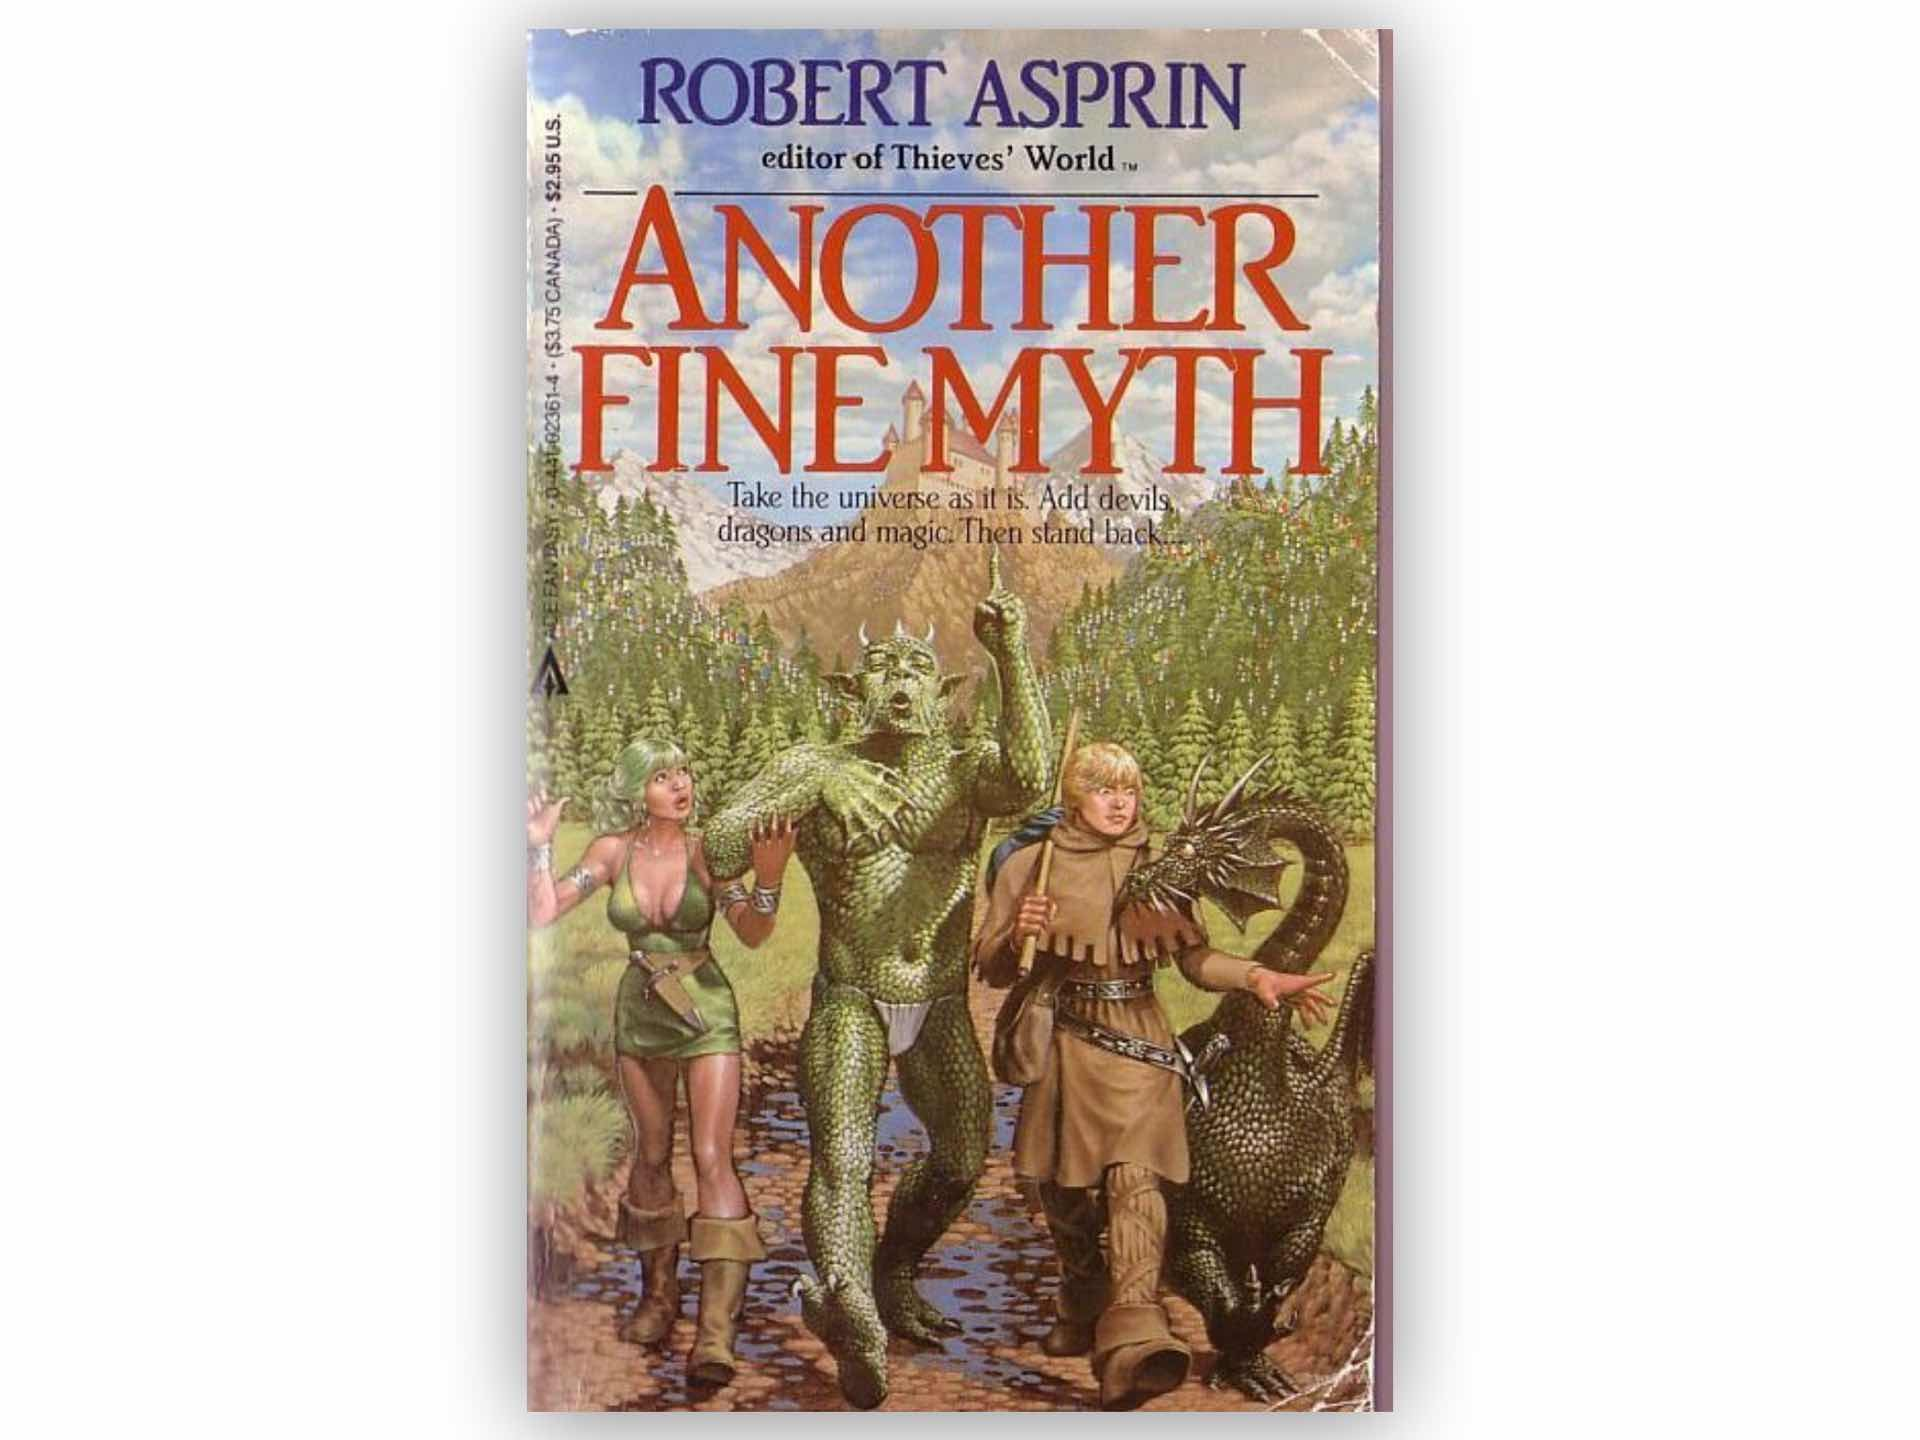 MYTH Adventures series by Robert Asprin.